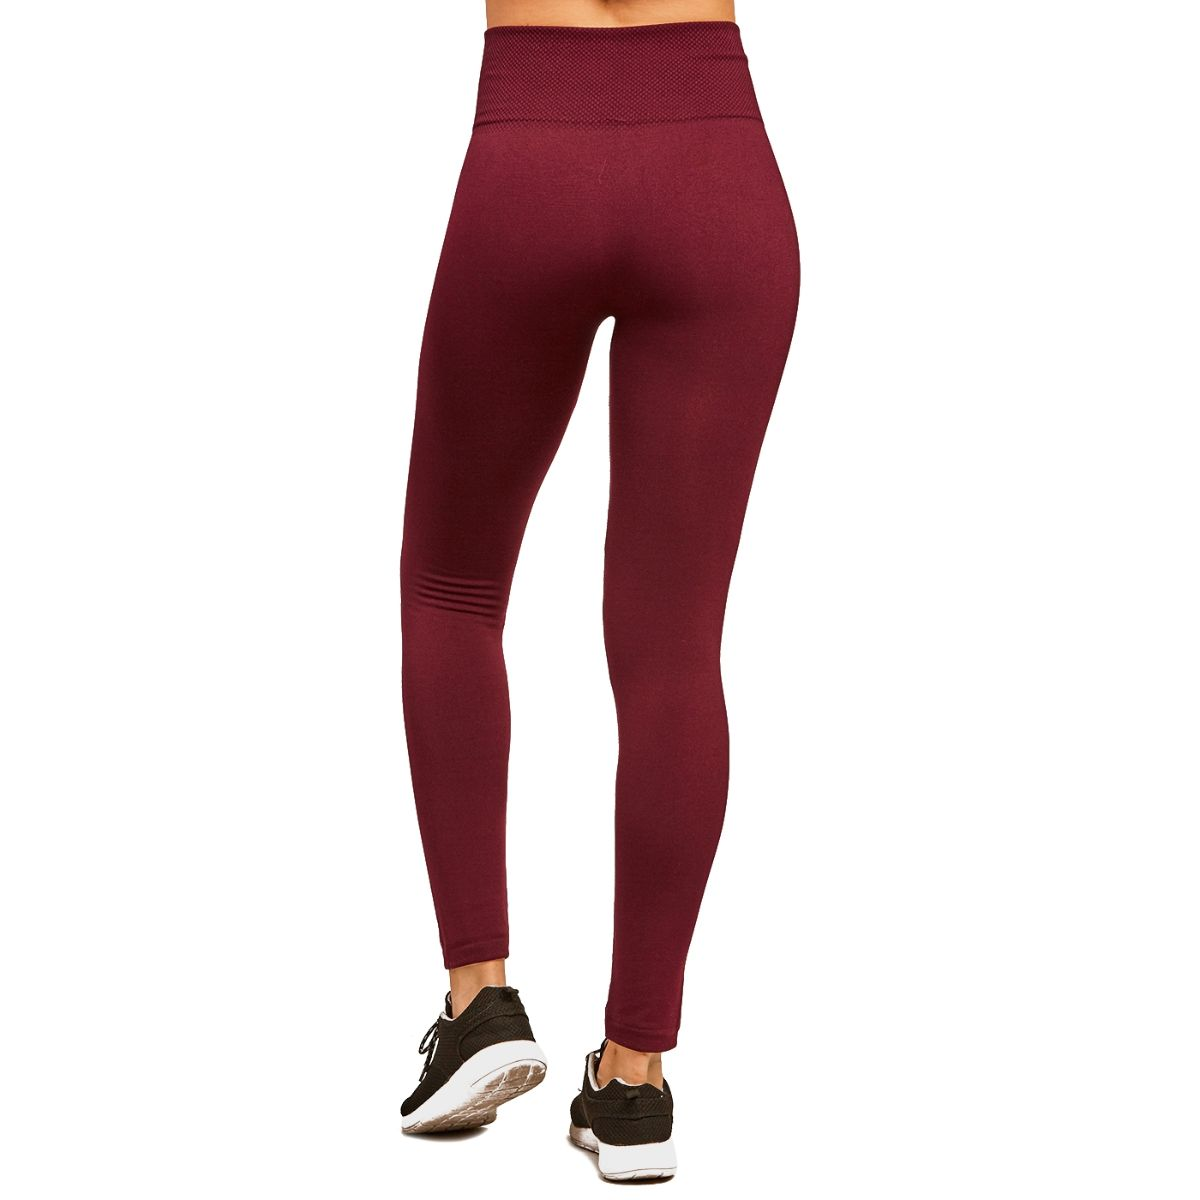 LAVRA Women's Wide Waistband with Fleece Lined Leggings Extra Warmth High Waist Pants